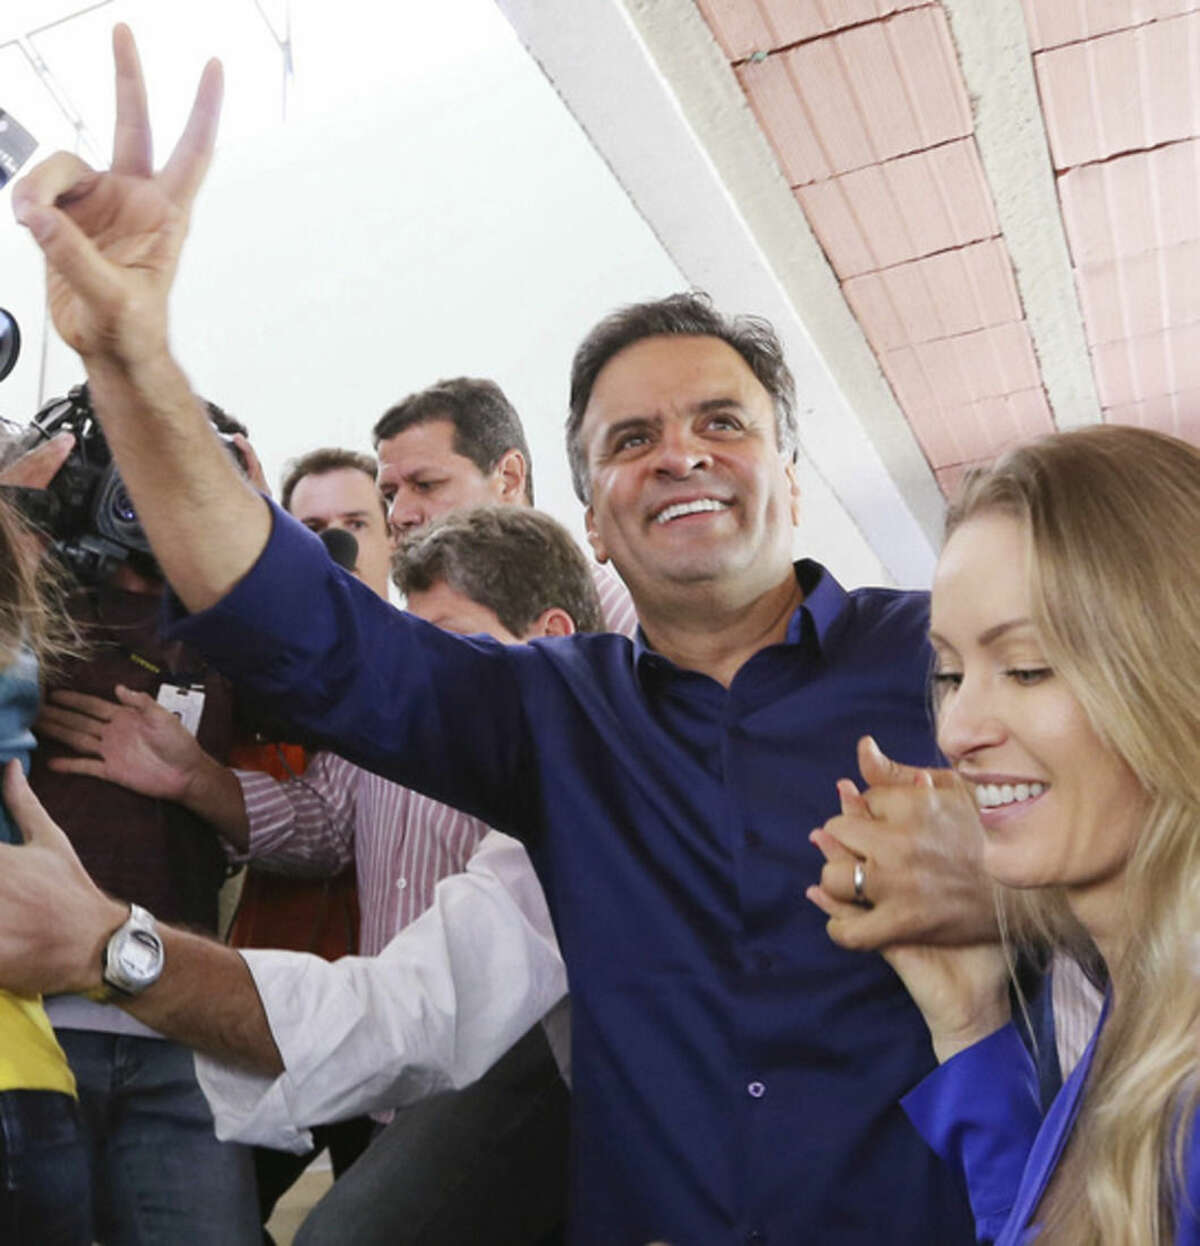 In this photo released by Coligacao Muda Brasil, Aecio Neves, presidential candidate of the Brazilian Social Democracy Party, PSDB, right, and his wife Leticia Weber flash a victory sign during general elections in Belo Horizonte, Brazil, Sunday, Oct. 5, 2014. An exit poll showed Sunday that President Dilma Rousseff will face challenger Aecio Neves in a second-round vote in Brazil's most unpredictable presidential election since the nation's return to democracy nearly three decades ago. (AP Photo/Marcos Fernandes-Coligacao Muda Brasil)